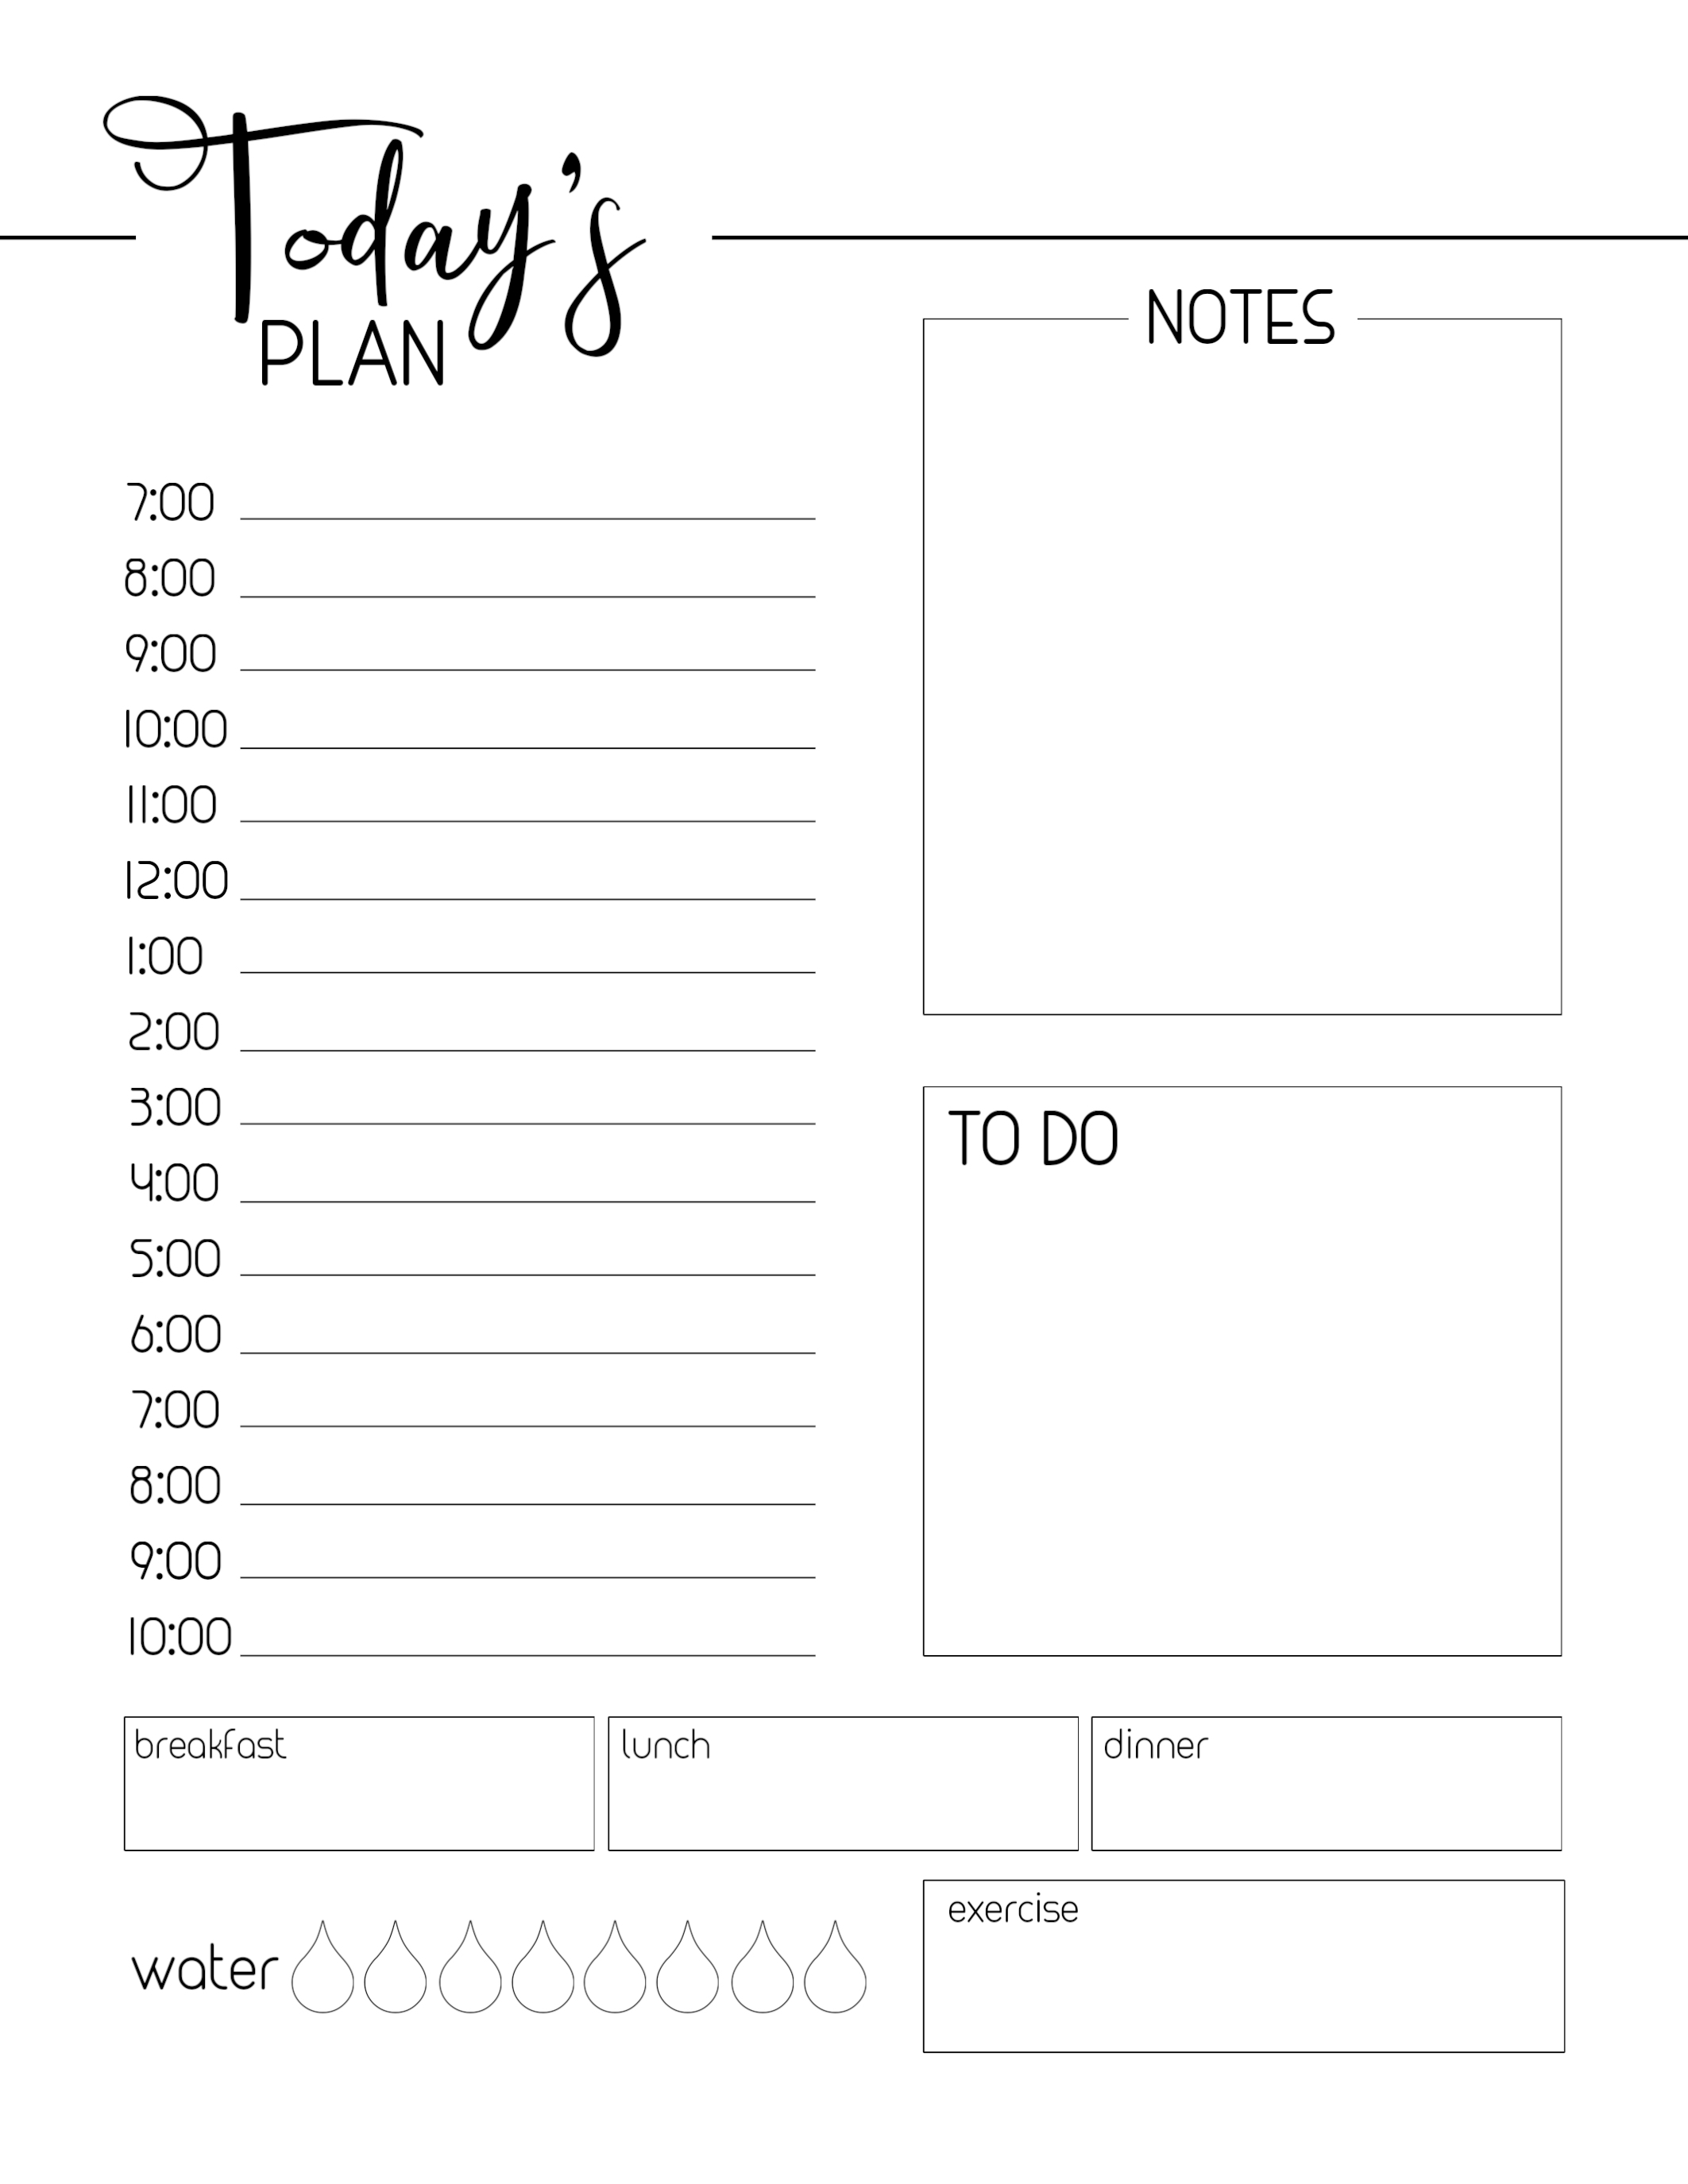 Daily Planner Sheets Free Printable - Wpa.wpart.co intended for Printable Daily Planner Sheets